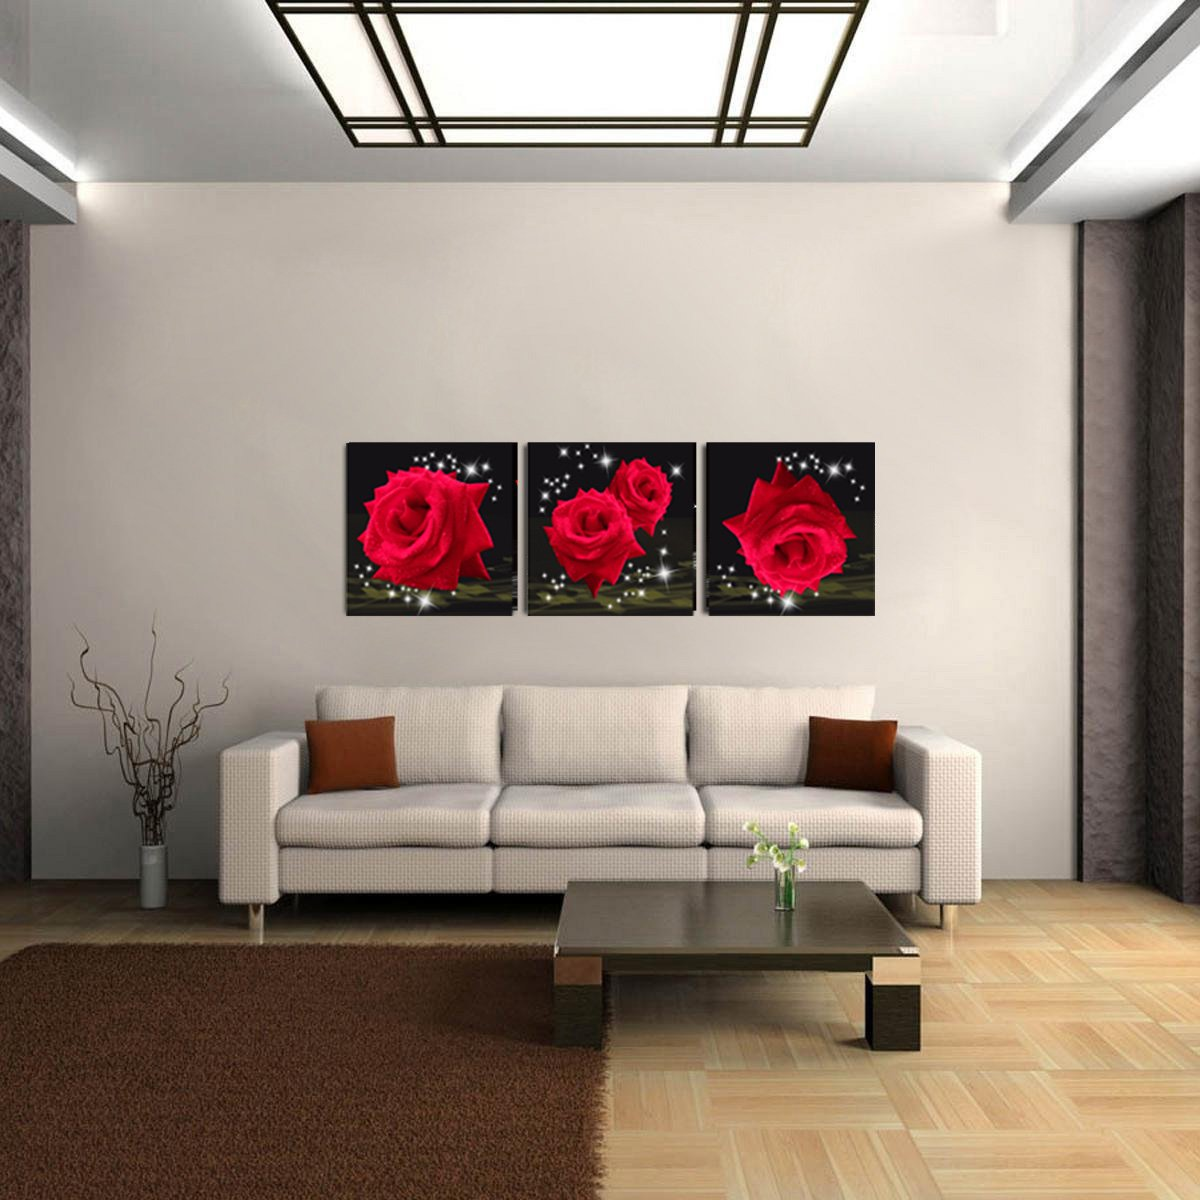 Mon Art Love Of Red Roses Modern Decorative Wall Canvas Set Of 3(UnStretched and UnFramed) by Mon Art (Image #4)